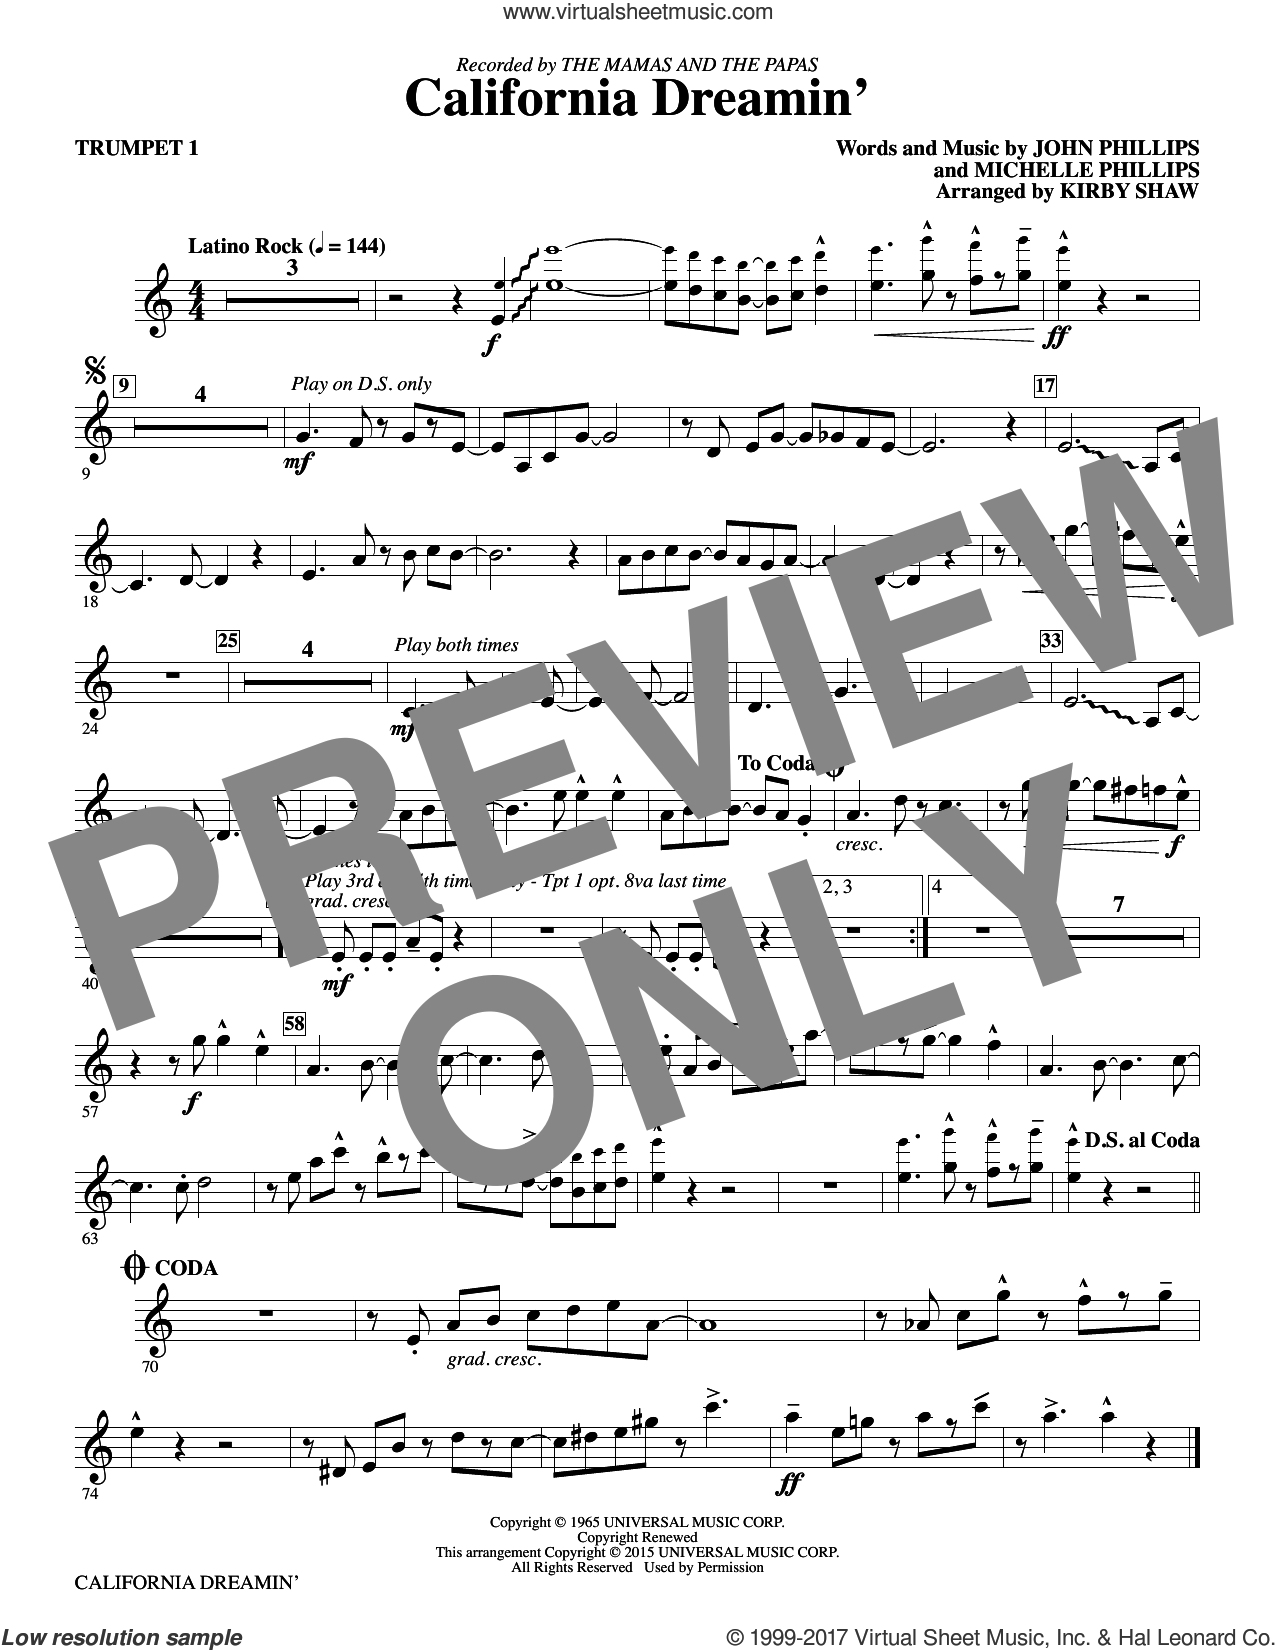 California Dreamin' (complete set of parts) sheet music for orchestra/band by Kirby Shaw, John Phillips, Michelle Phillips and The Mamas & The Papas, intermediate skill level